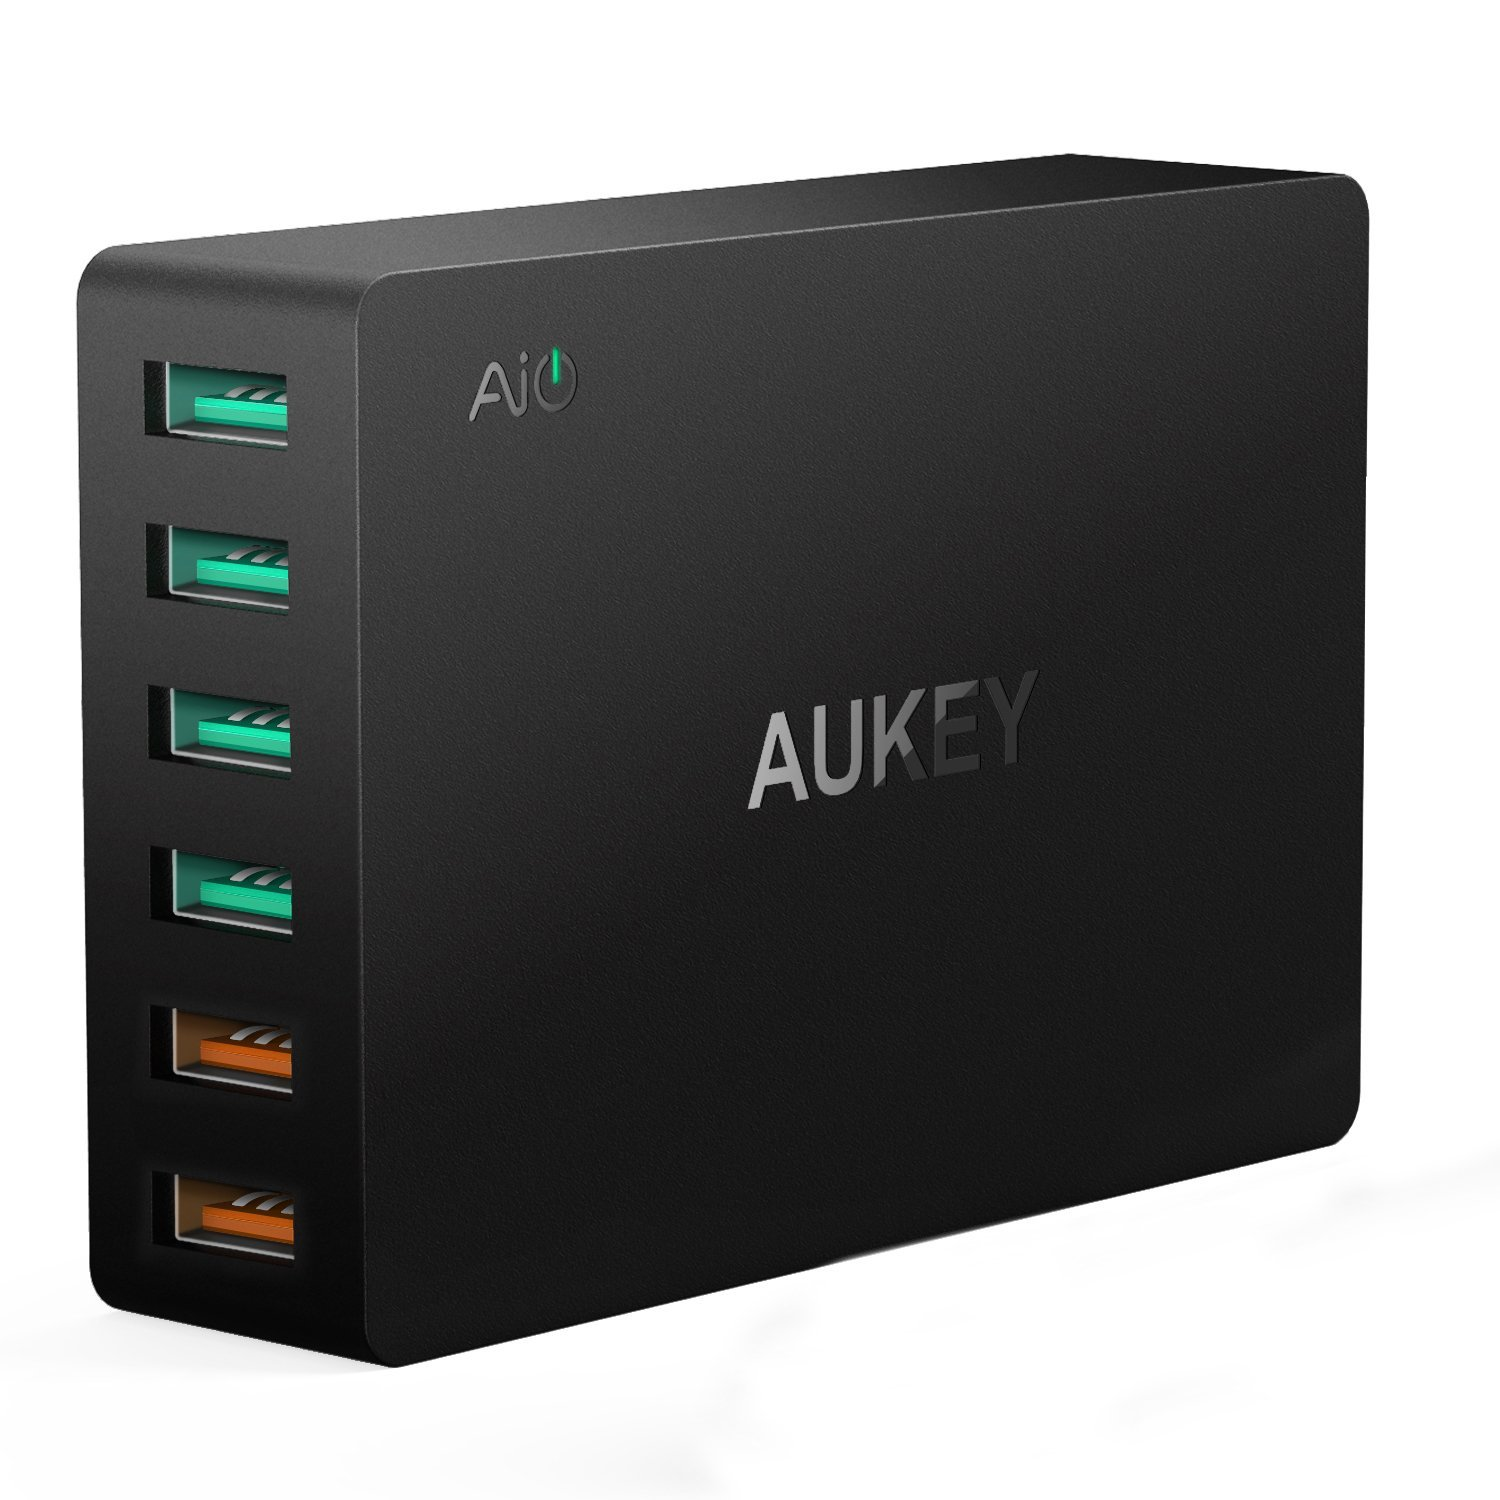 Aukey USB 6 Port Charger PA-T11 mit Quick Charge 3.0 im Test